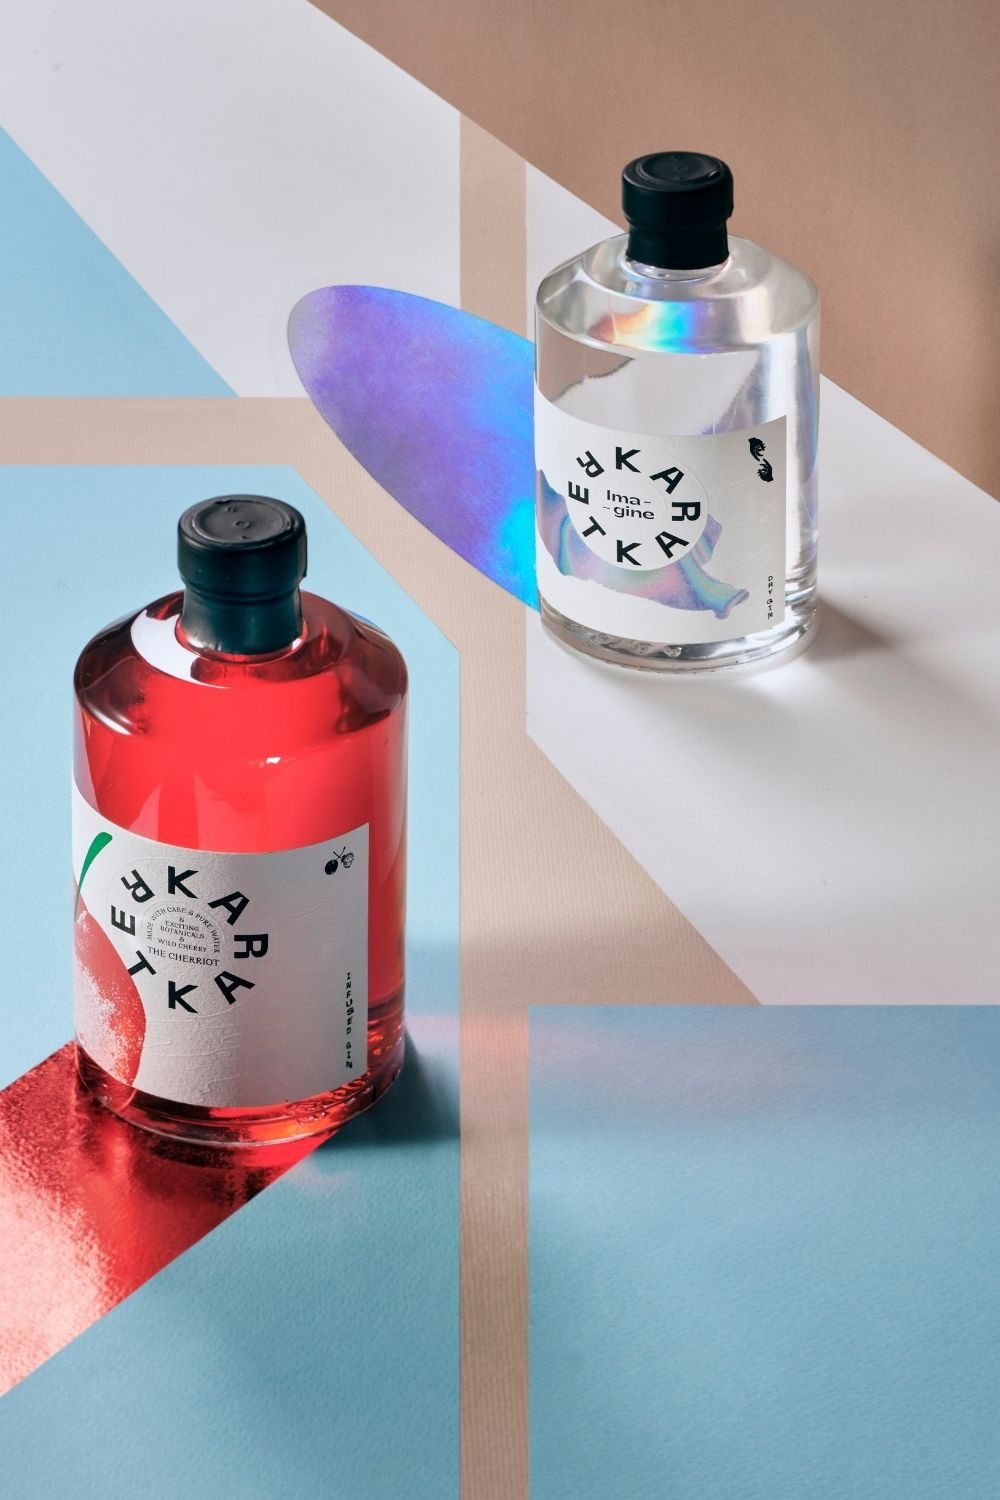 Karakter Distillery's Craft gin bottles on display. The new label reflecting rainbow colours nicely captures Imagine dry gin's artistic flavour. The cherriot bottle is represented with a vivid red colour caused by the finest wild cherries.